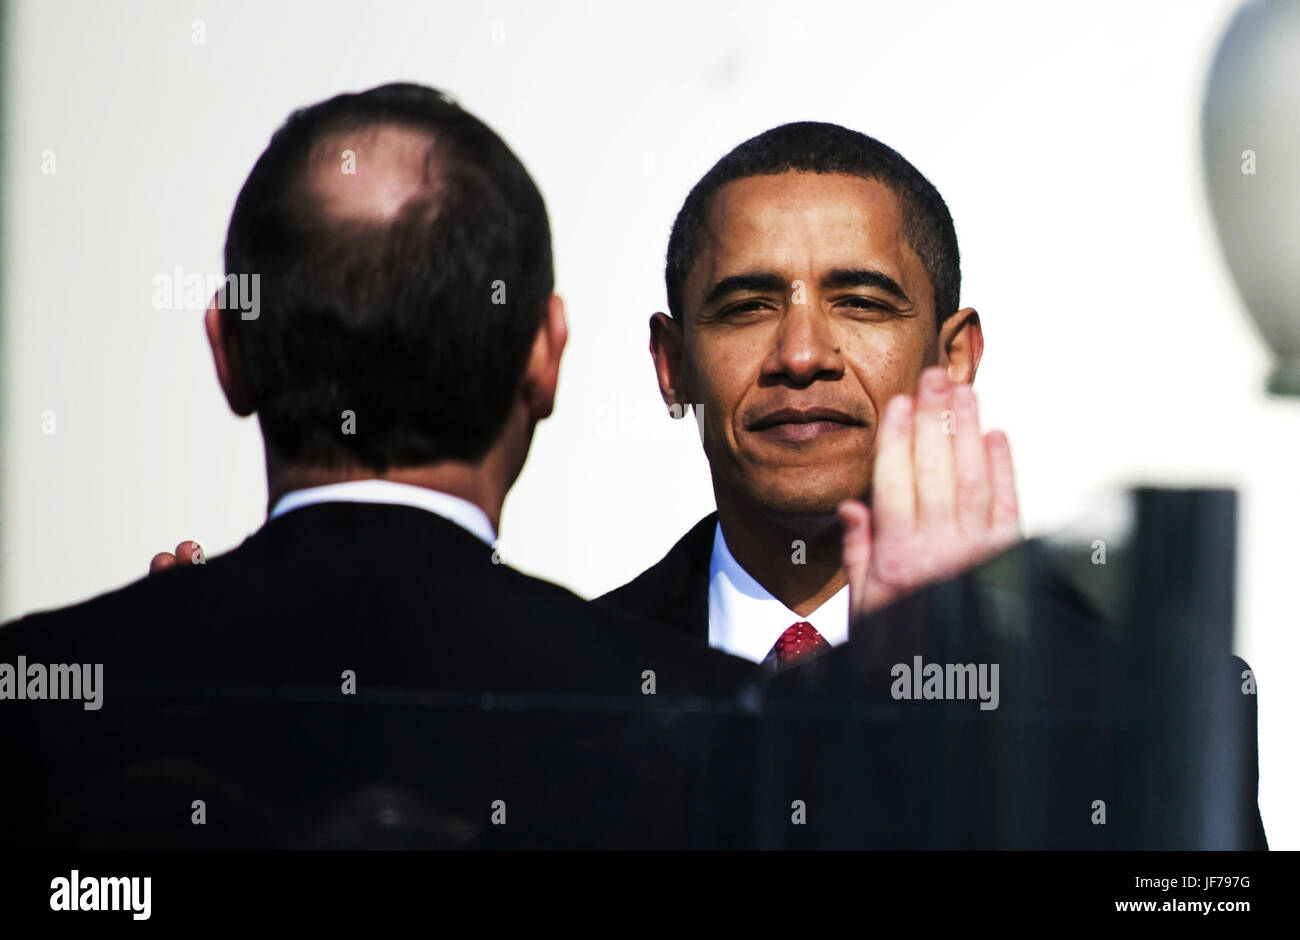 President Barack Obama takes the oath of office in Washington, D.C., Jan. 20, 2009. - Stock Image